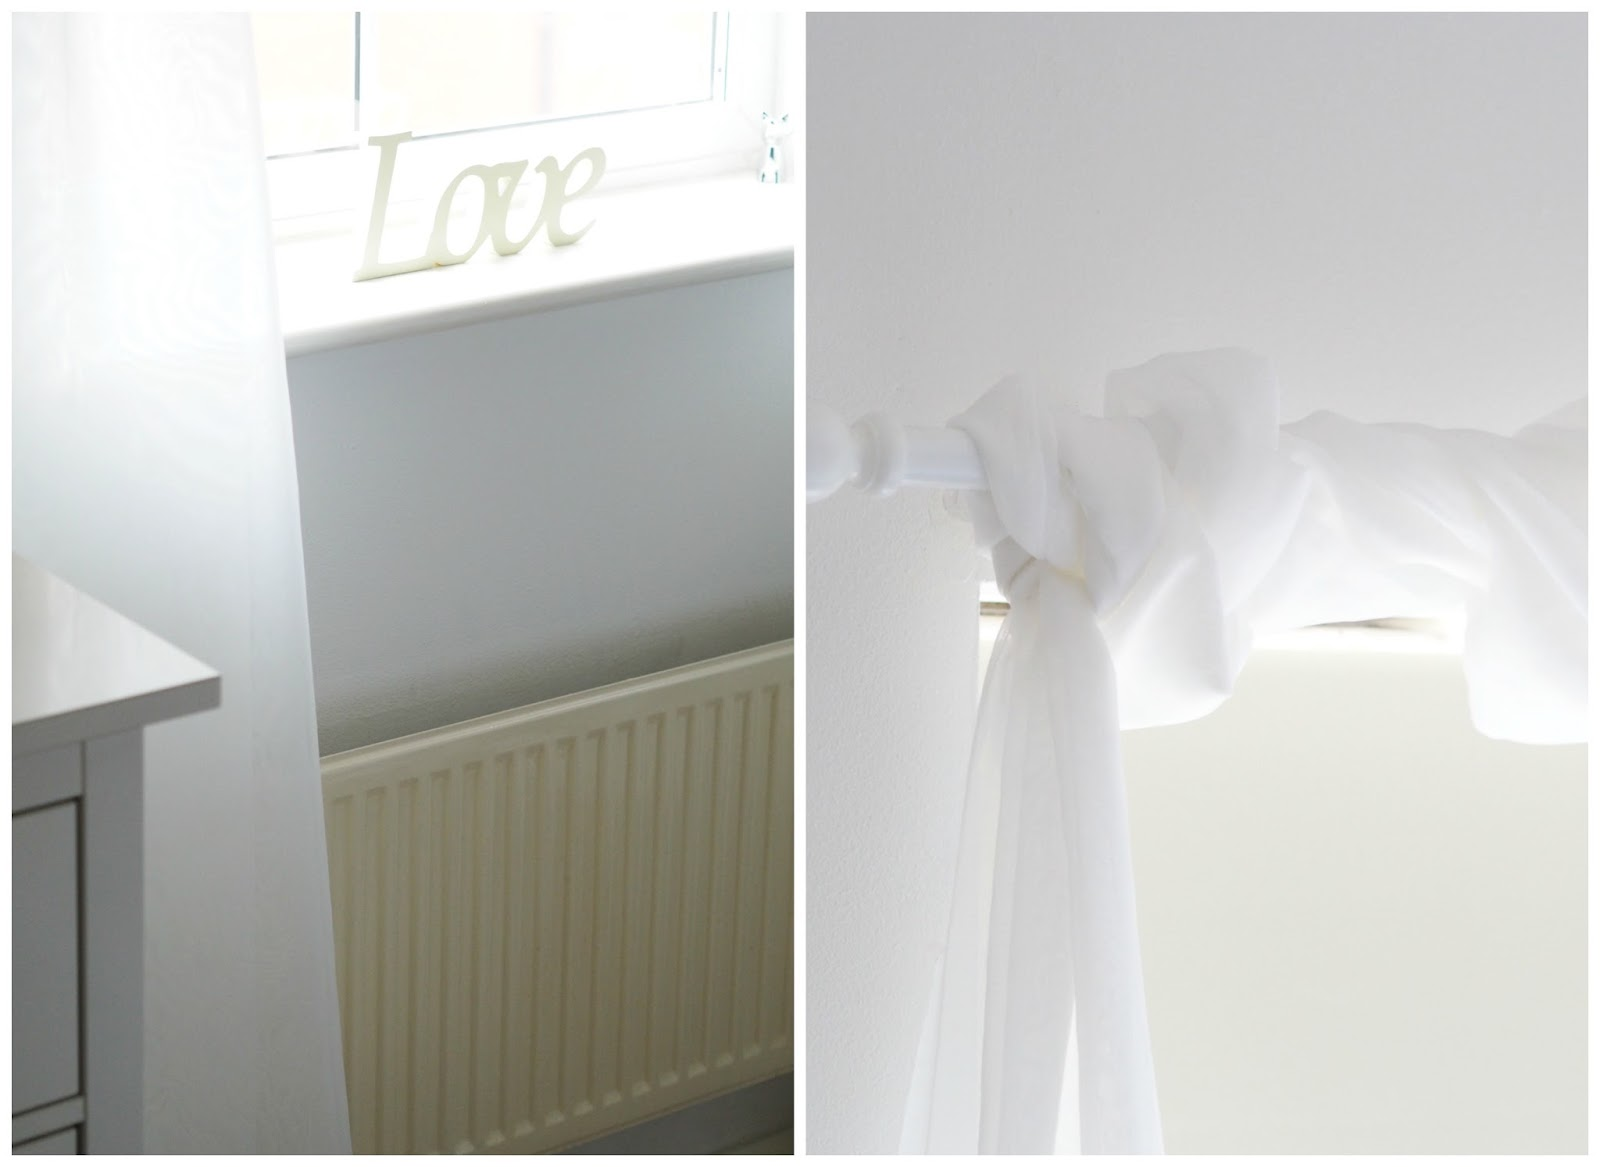 Leicester interior design vintage bedroom makeover Priceless Life of Mine over 40 lifestyle blog